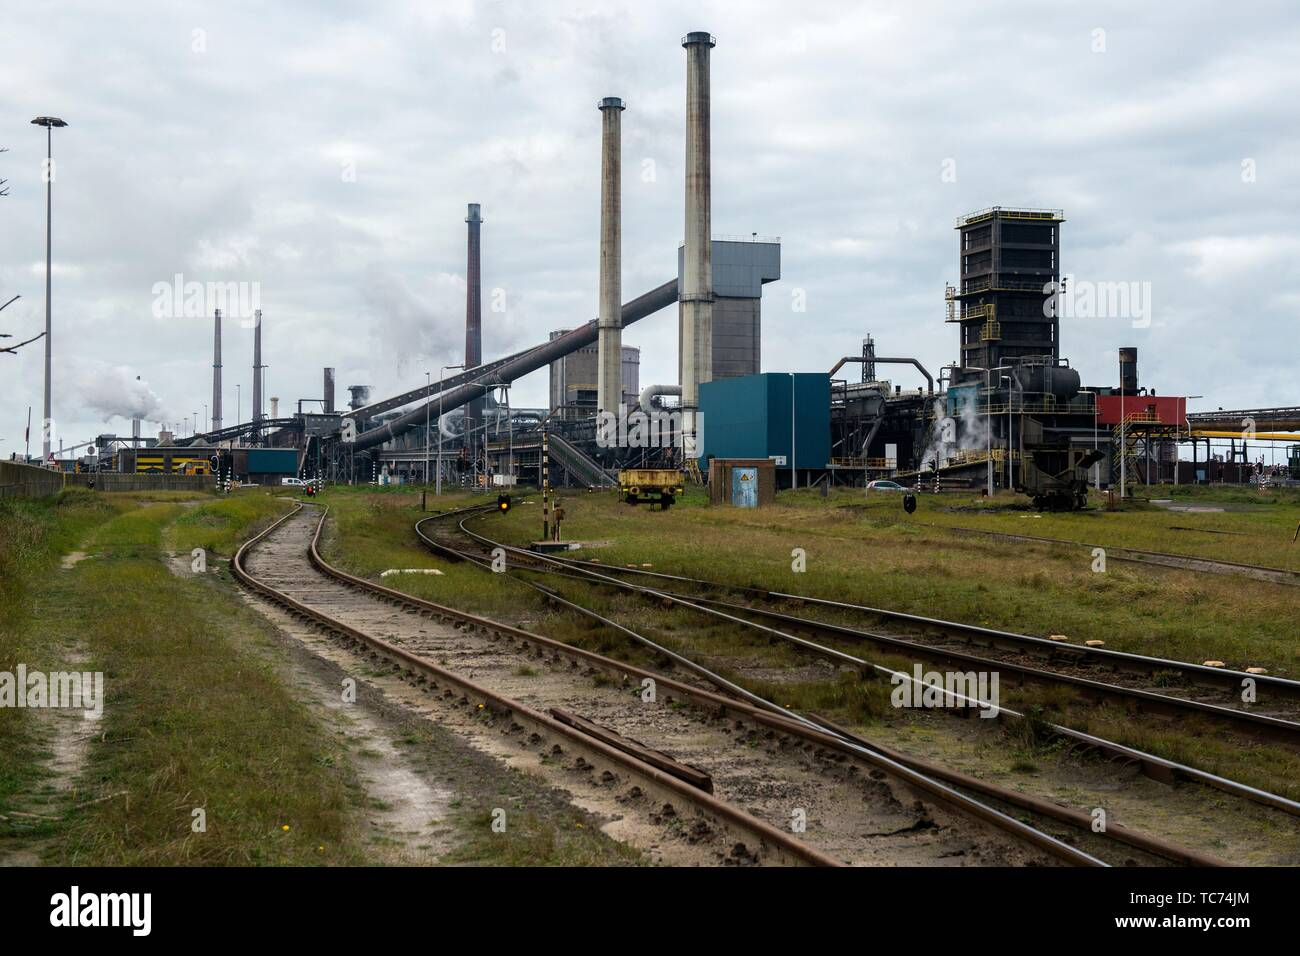 North-West Europe. Huge, heavy industry terrain, producing various kinds of steel inside an old, CO2 emmitting environment. - Stock Image